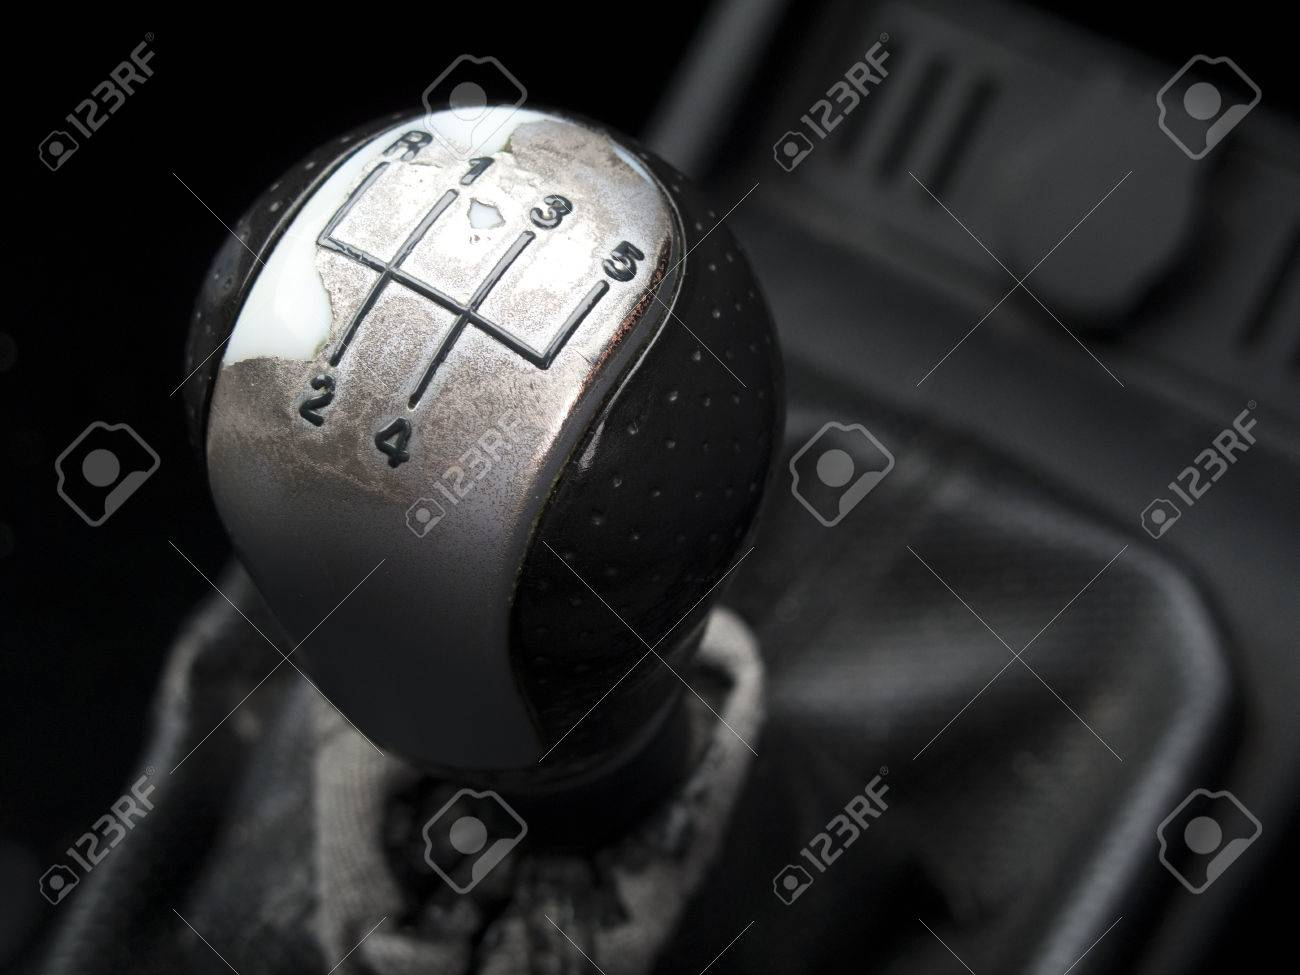 Stock Photo - Worn five speed manual car gearstick with shallow depth of  field